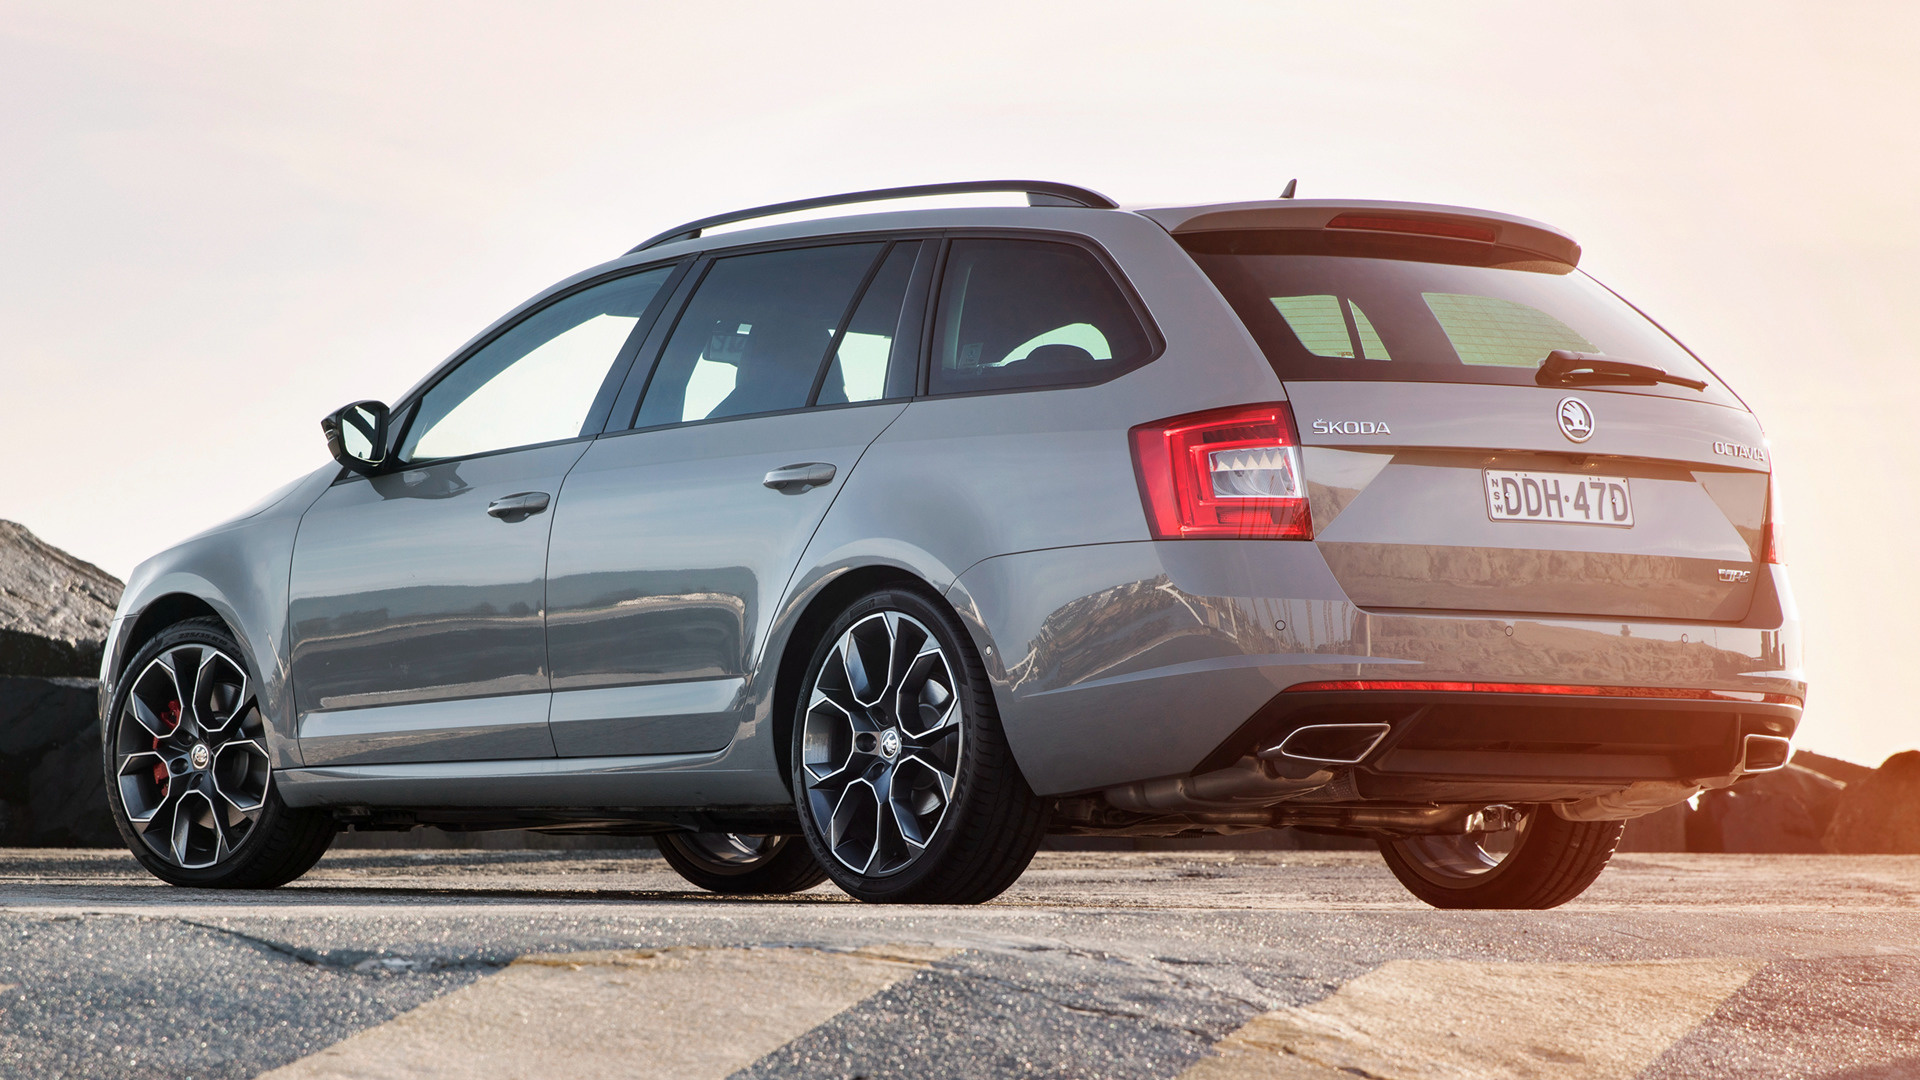 skoda octavia rs wagon 2014 au wallpapers and hd images. Black Bedroom Furniture Sets. Home Design Ideas